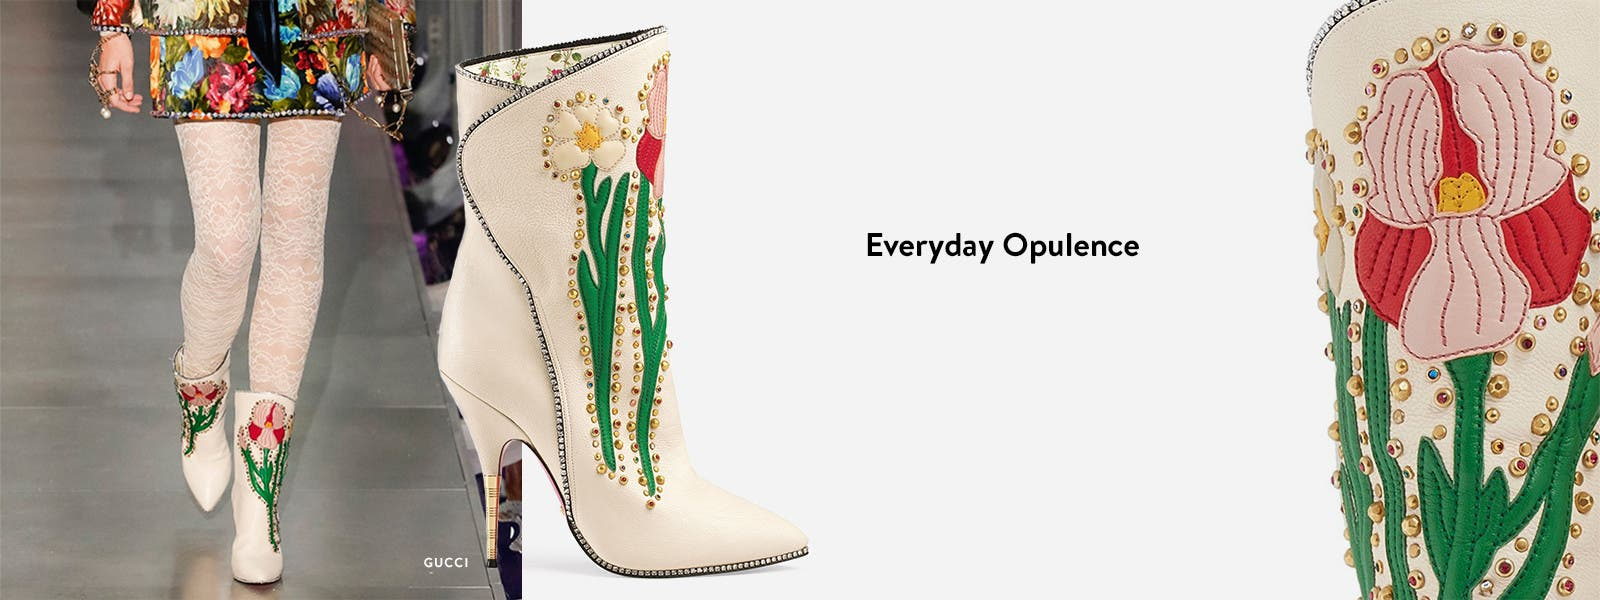 Everyday opulence: embellished designer shoes by Gucci and more.